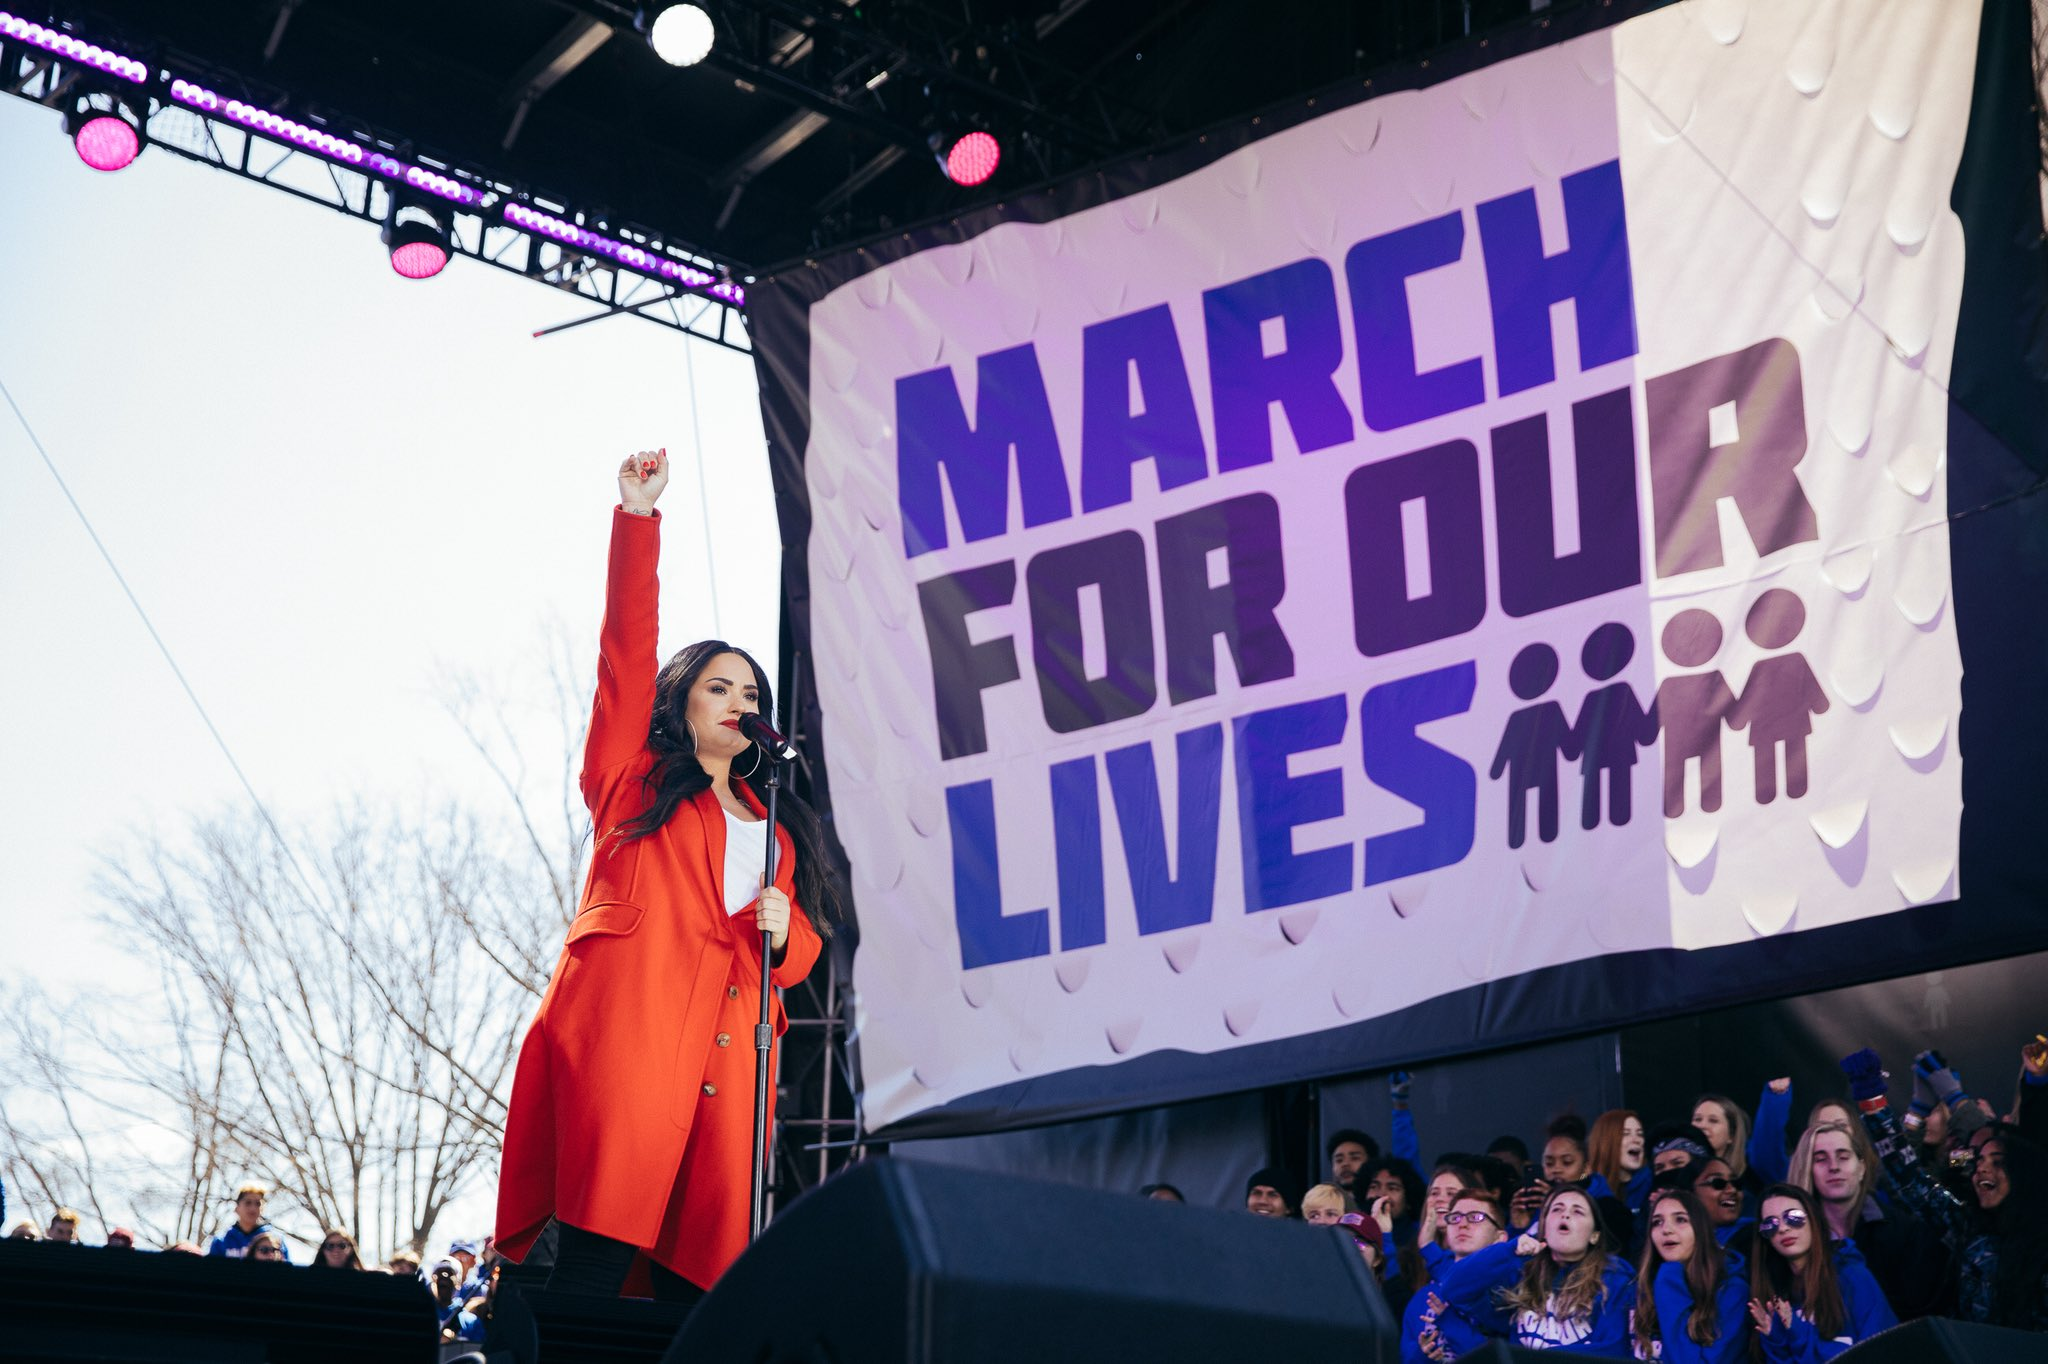 Today I marched with a lot of warriors ���� Proud to be a part of #MarchForOurLives @AMarch4OurLives https://t.co/4uukvVMAZ9